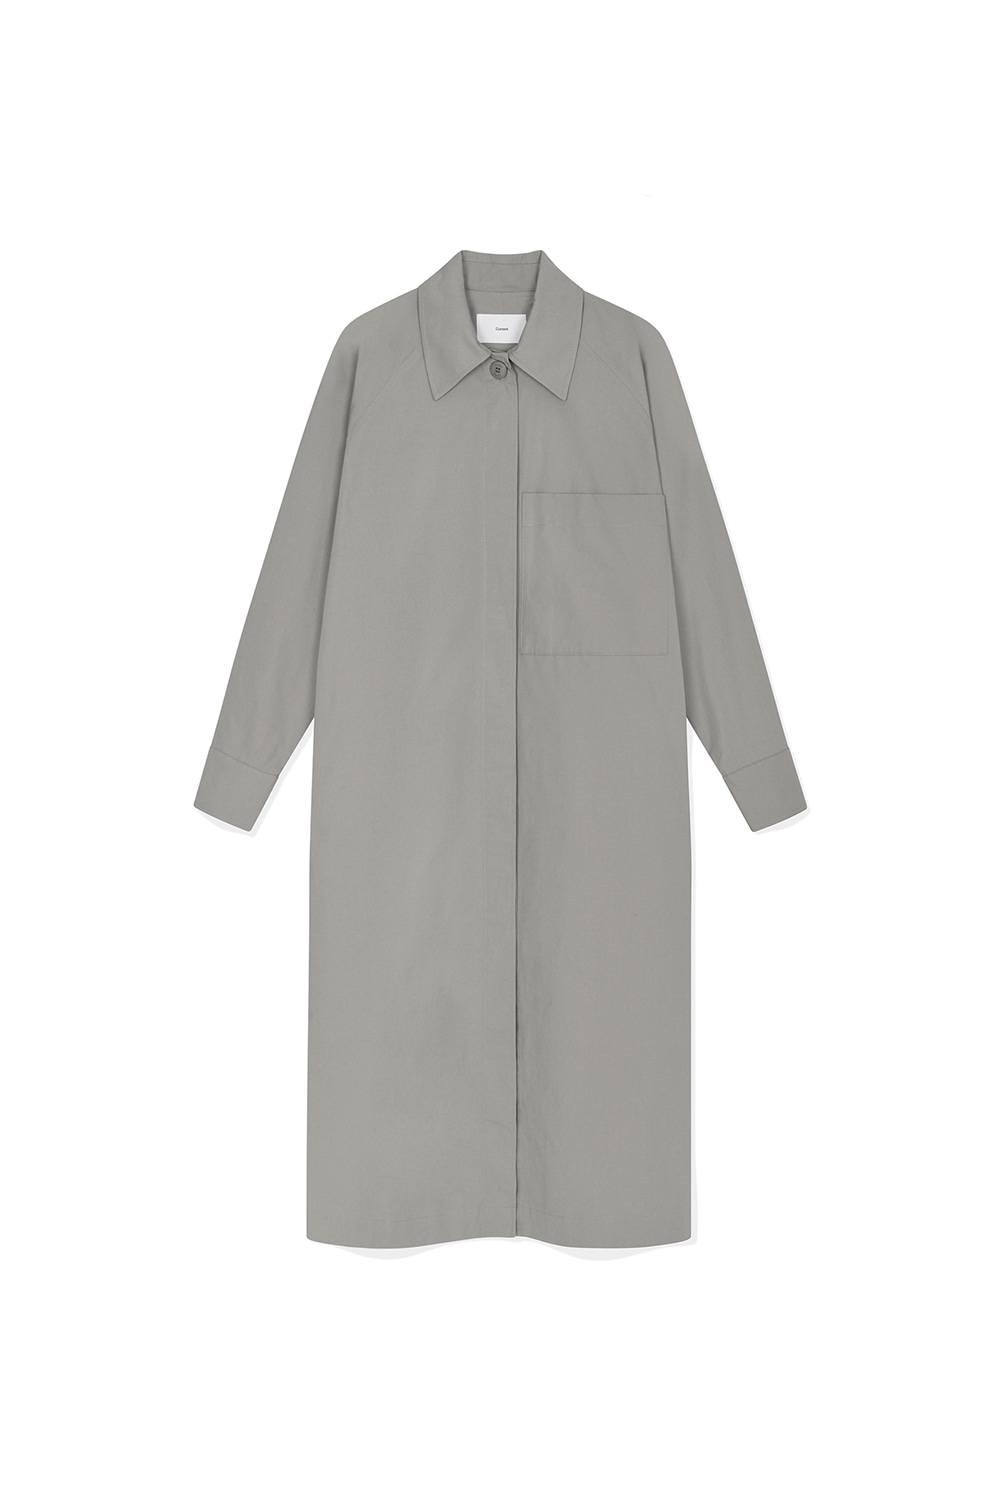 Over Shirts Dress Women JA [Gray] -10%